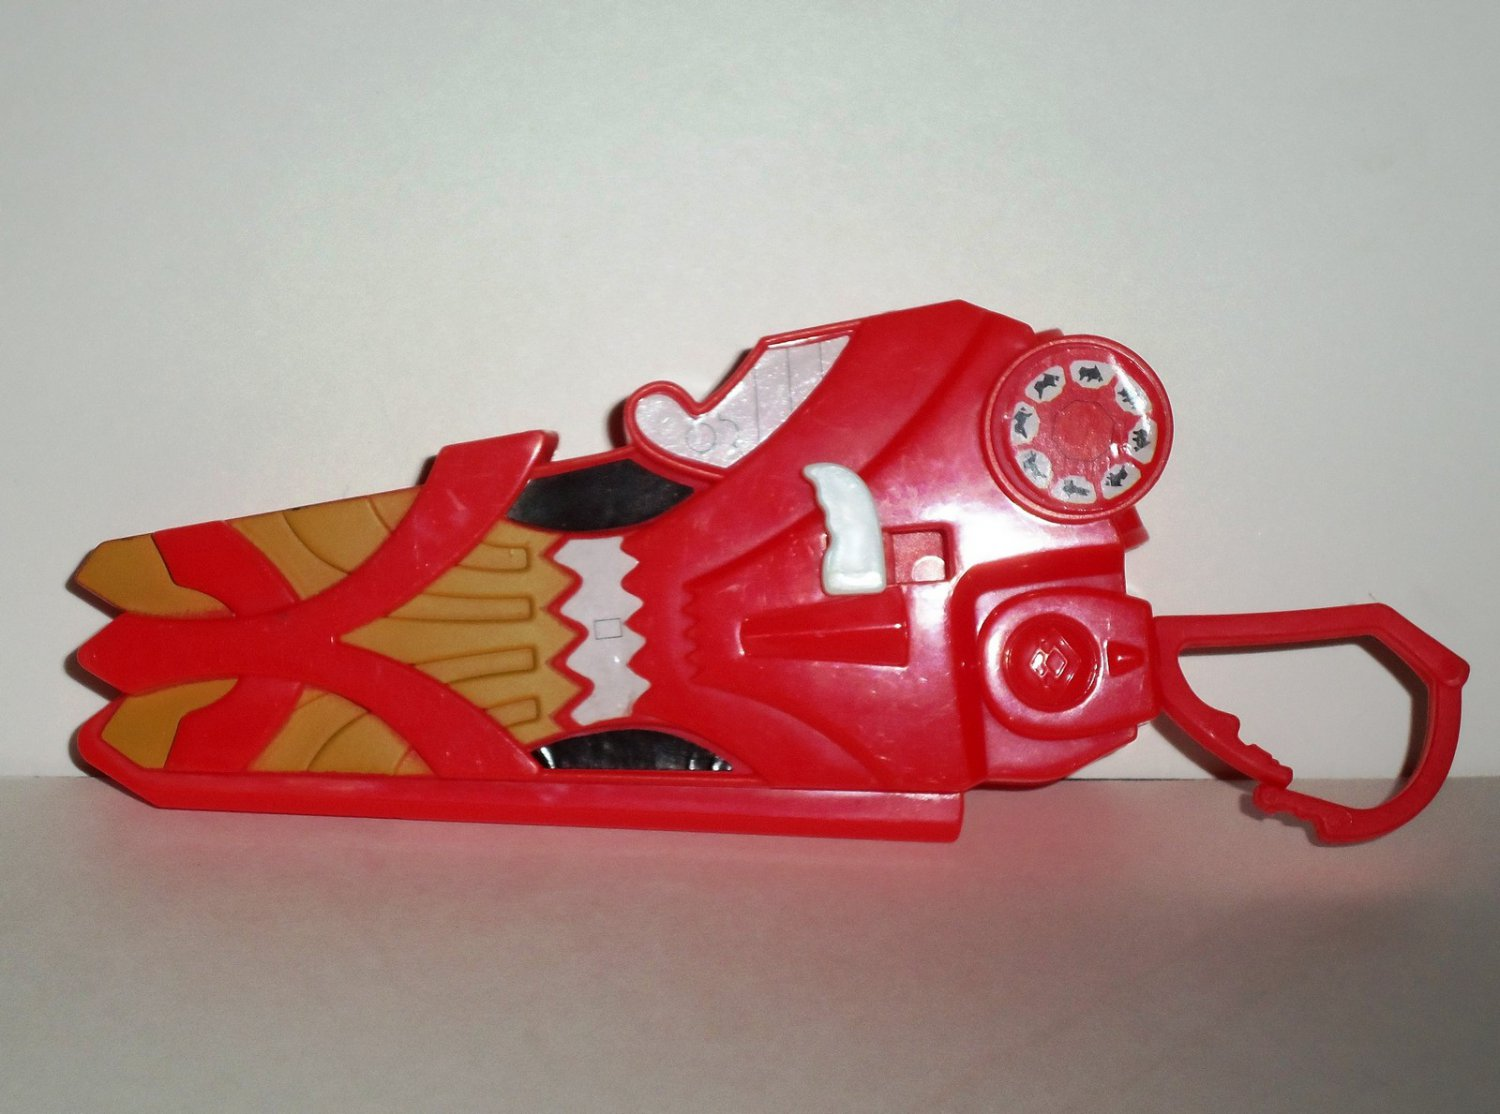 McDonald's 2011 Power Rangers Samurai Firesmasher Cannon No Discs Happy Meal Toy Loose Used